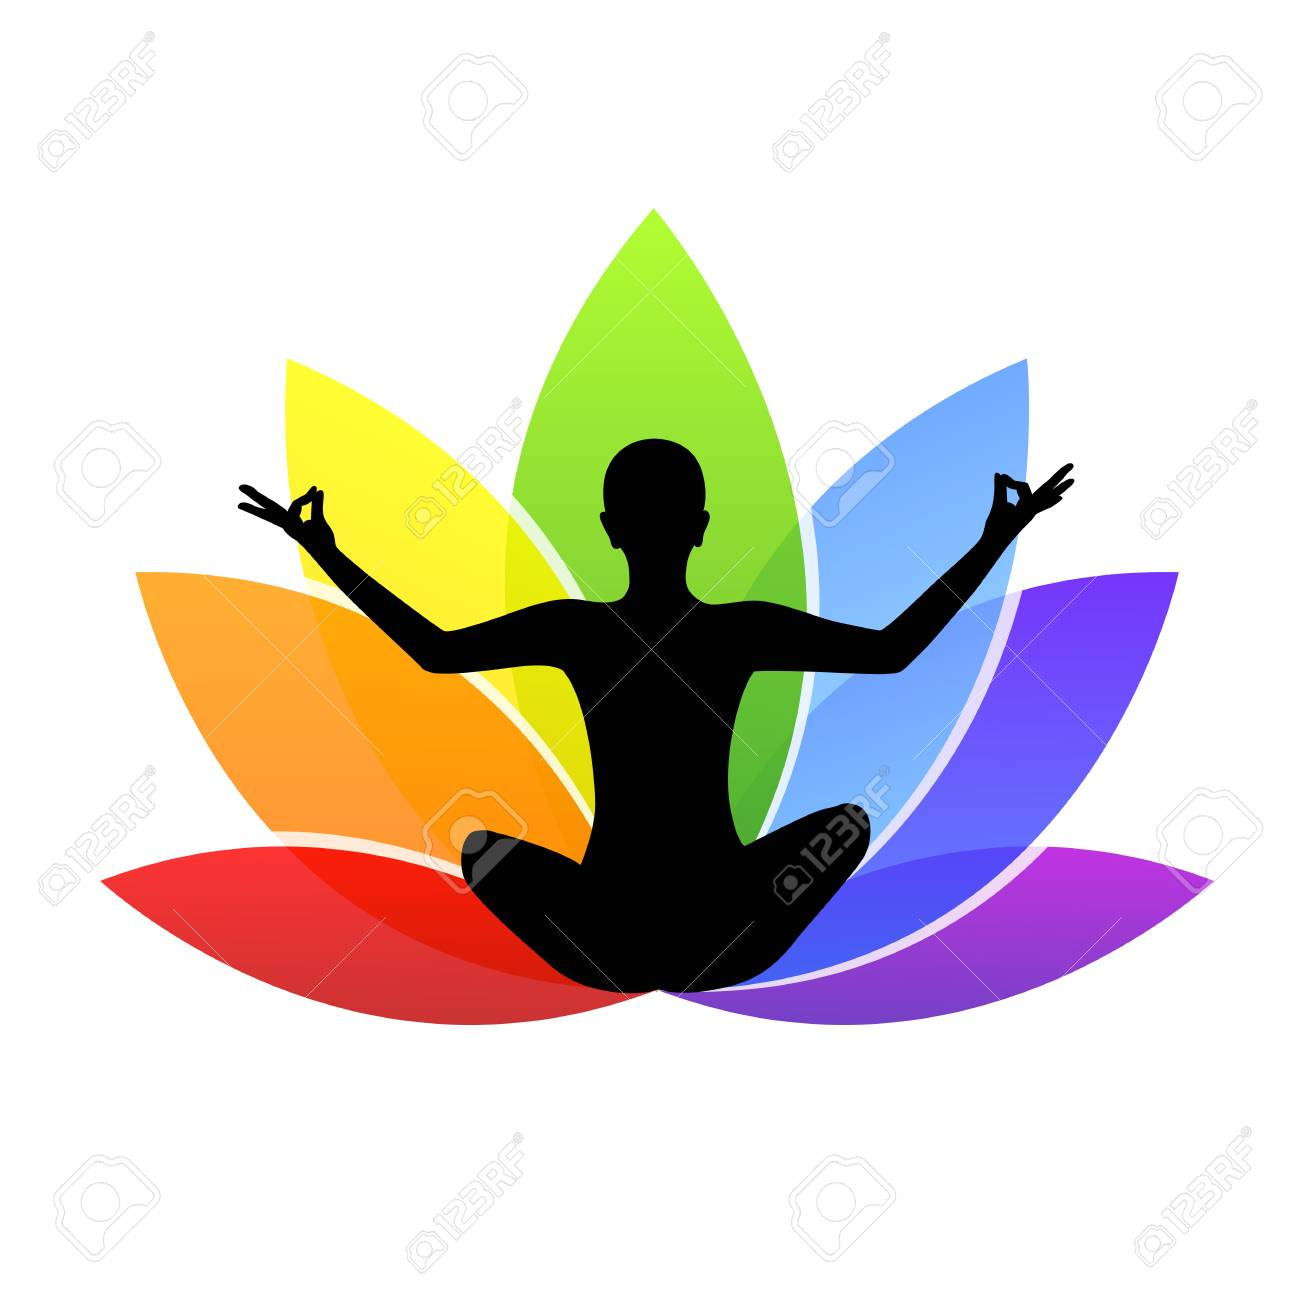 Young Person Sitting In Yoga Meditation Lotus Position Silhouette Royalty Free Cliparts Vectors And Stock Illustration Image 109355092